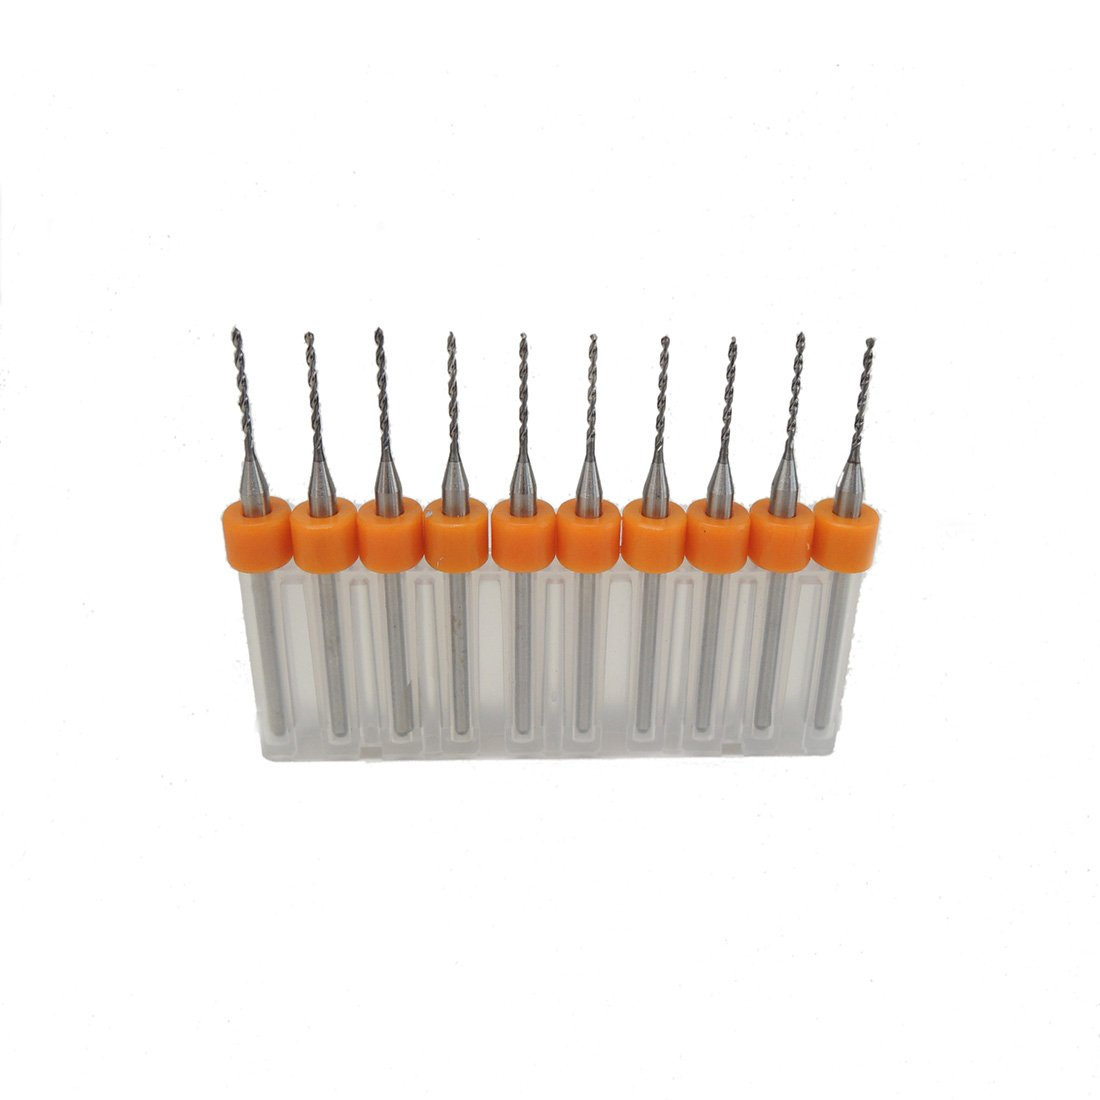 10pcs//Set 1.1mm Hard Alloy PCB Print Circuit Board Carbide Micro Drill Bits Tool